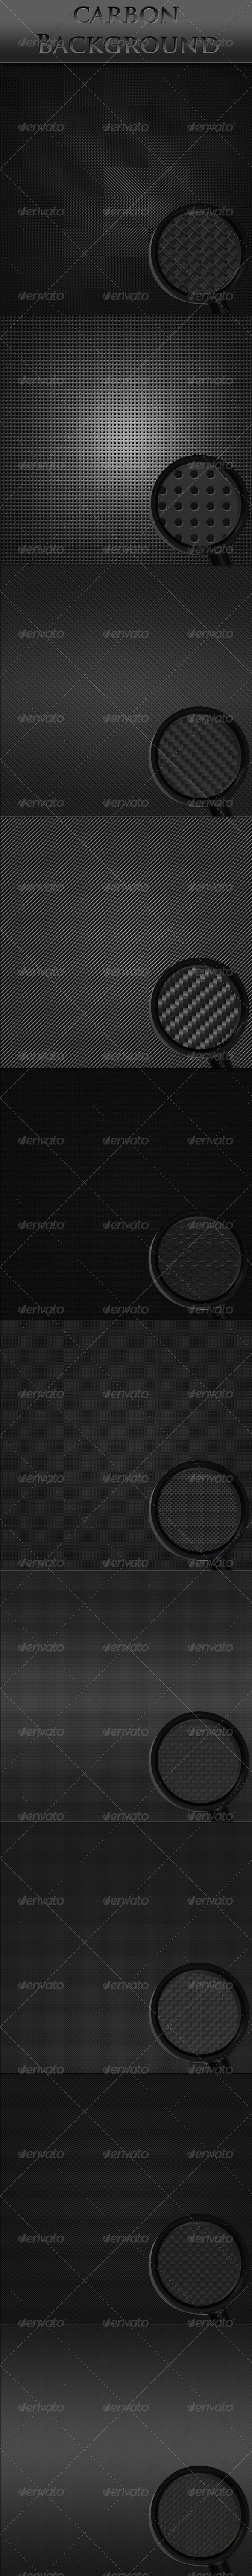 GraphicRiver Carbon Background 6437176